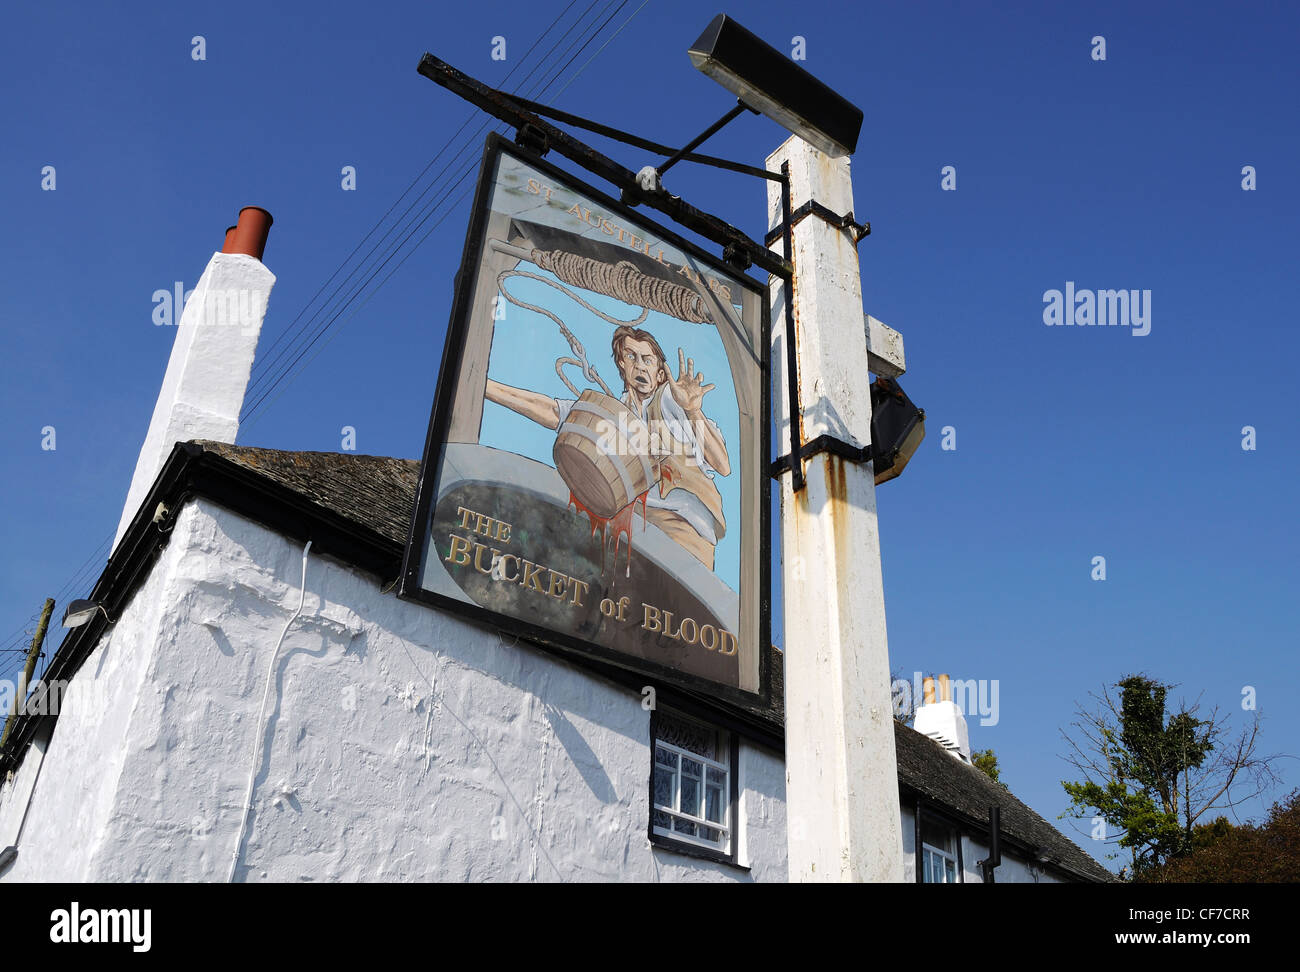 The Bucket of Blood pub at Phillack near Hayle in Cornwall, UK - Stock Image